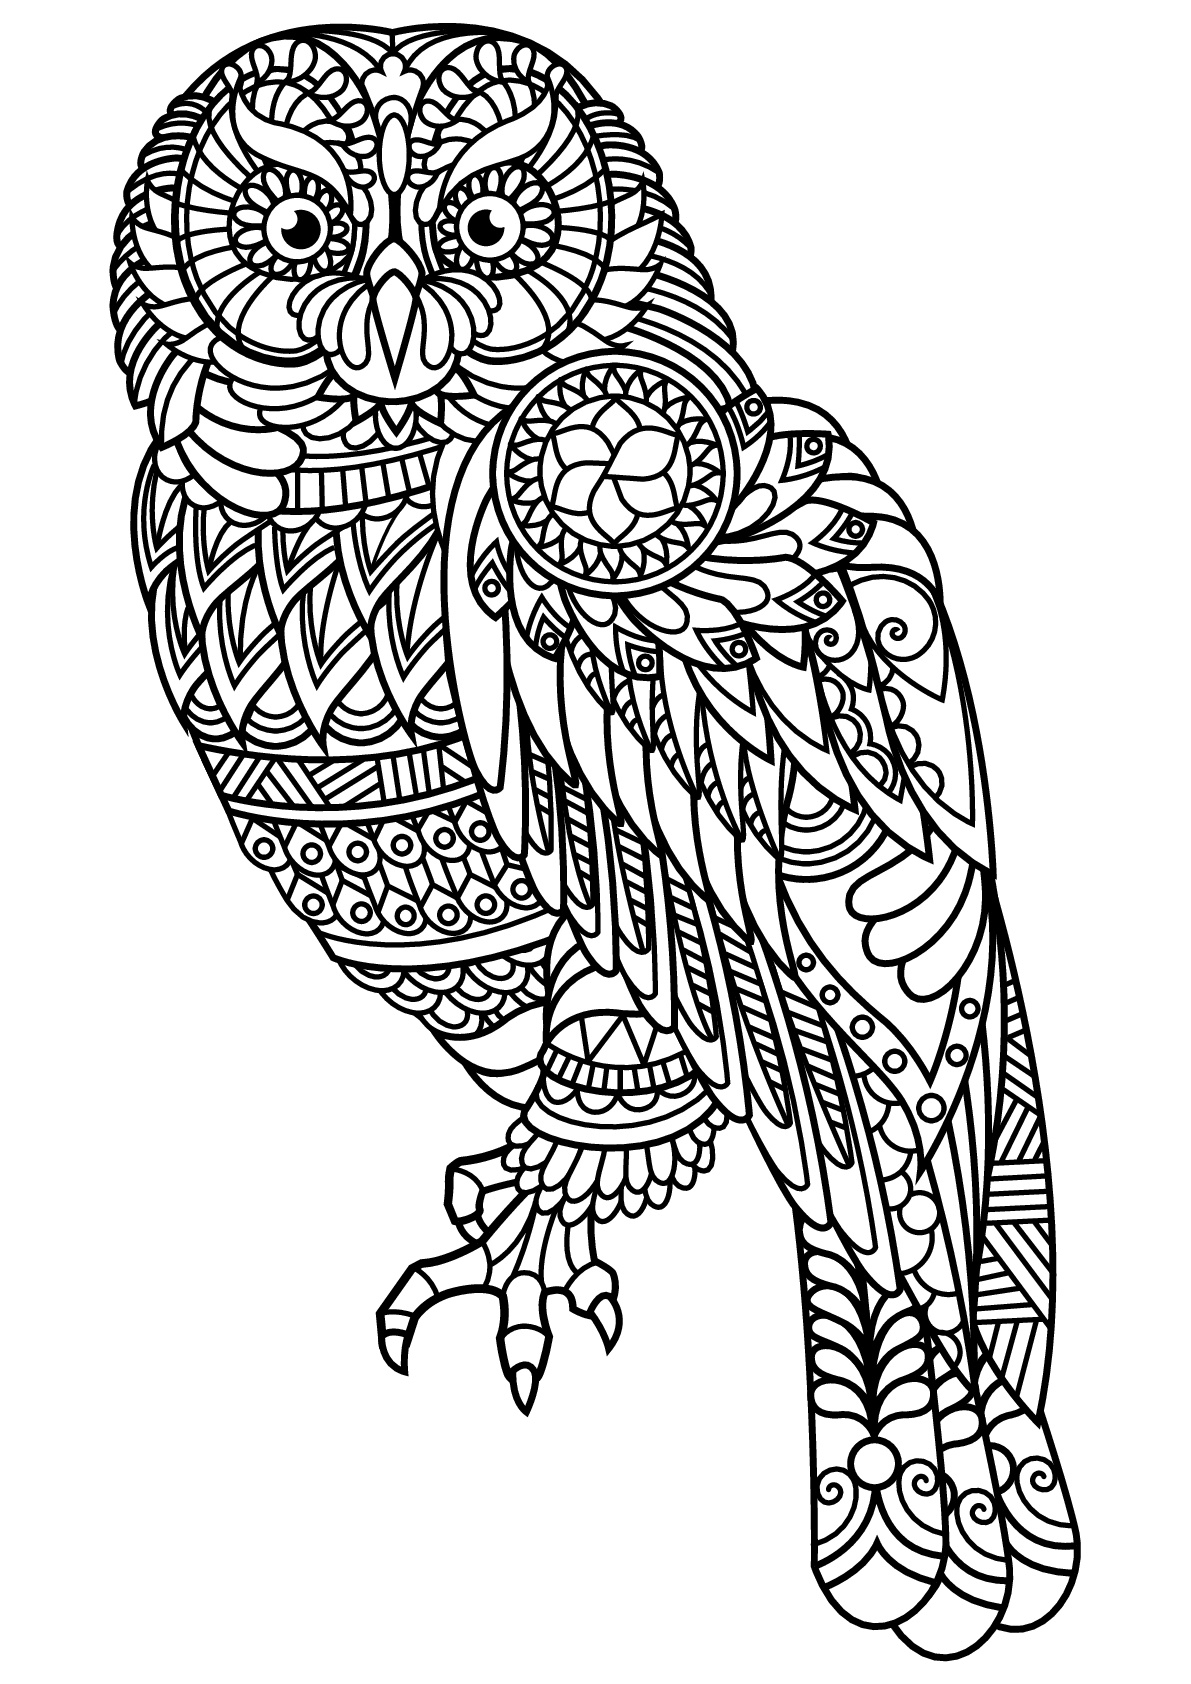 free owl coloring pages free owl printables that are handy barrett website owl free coloring pages